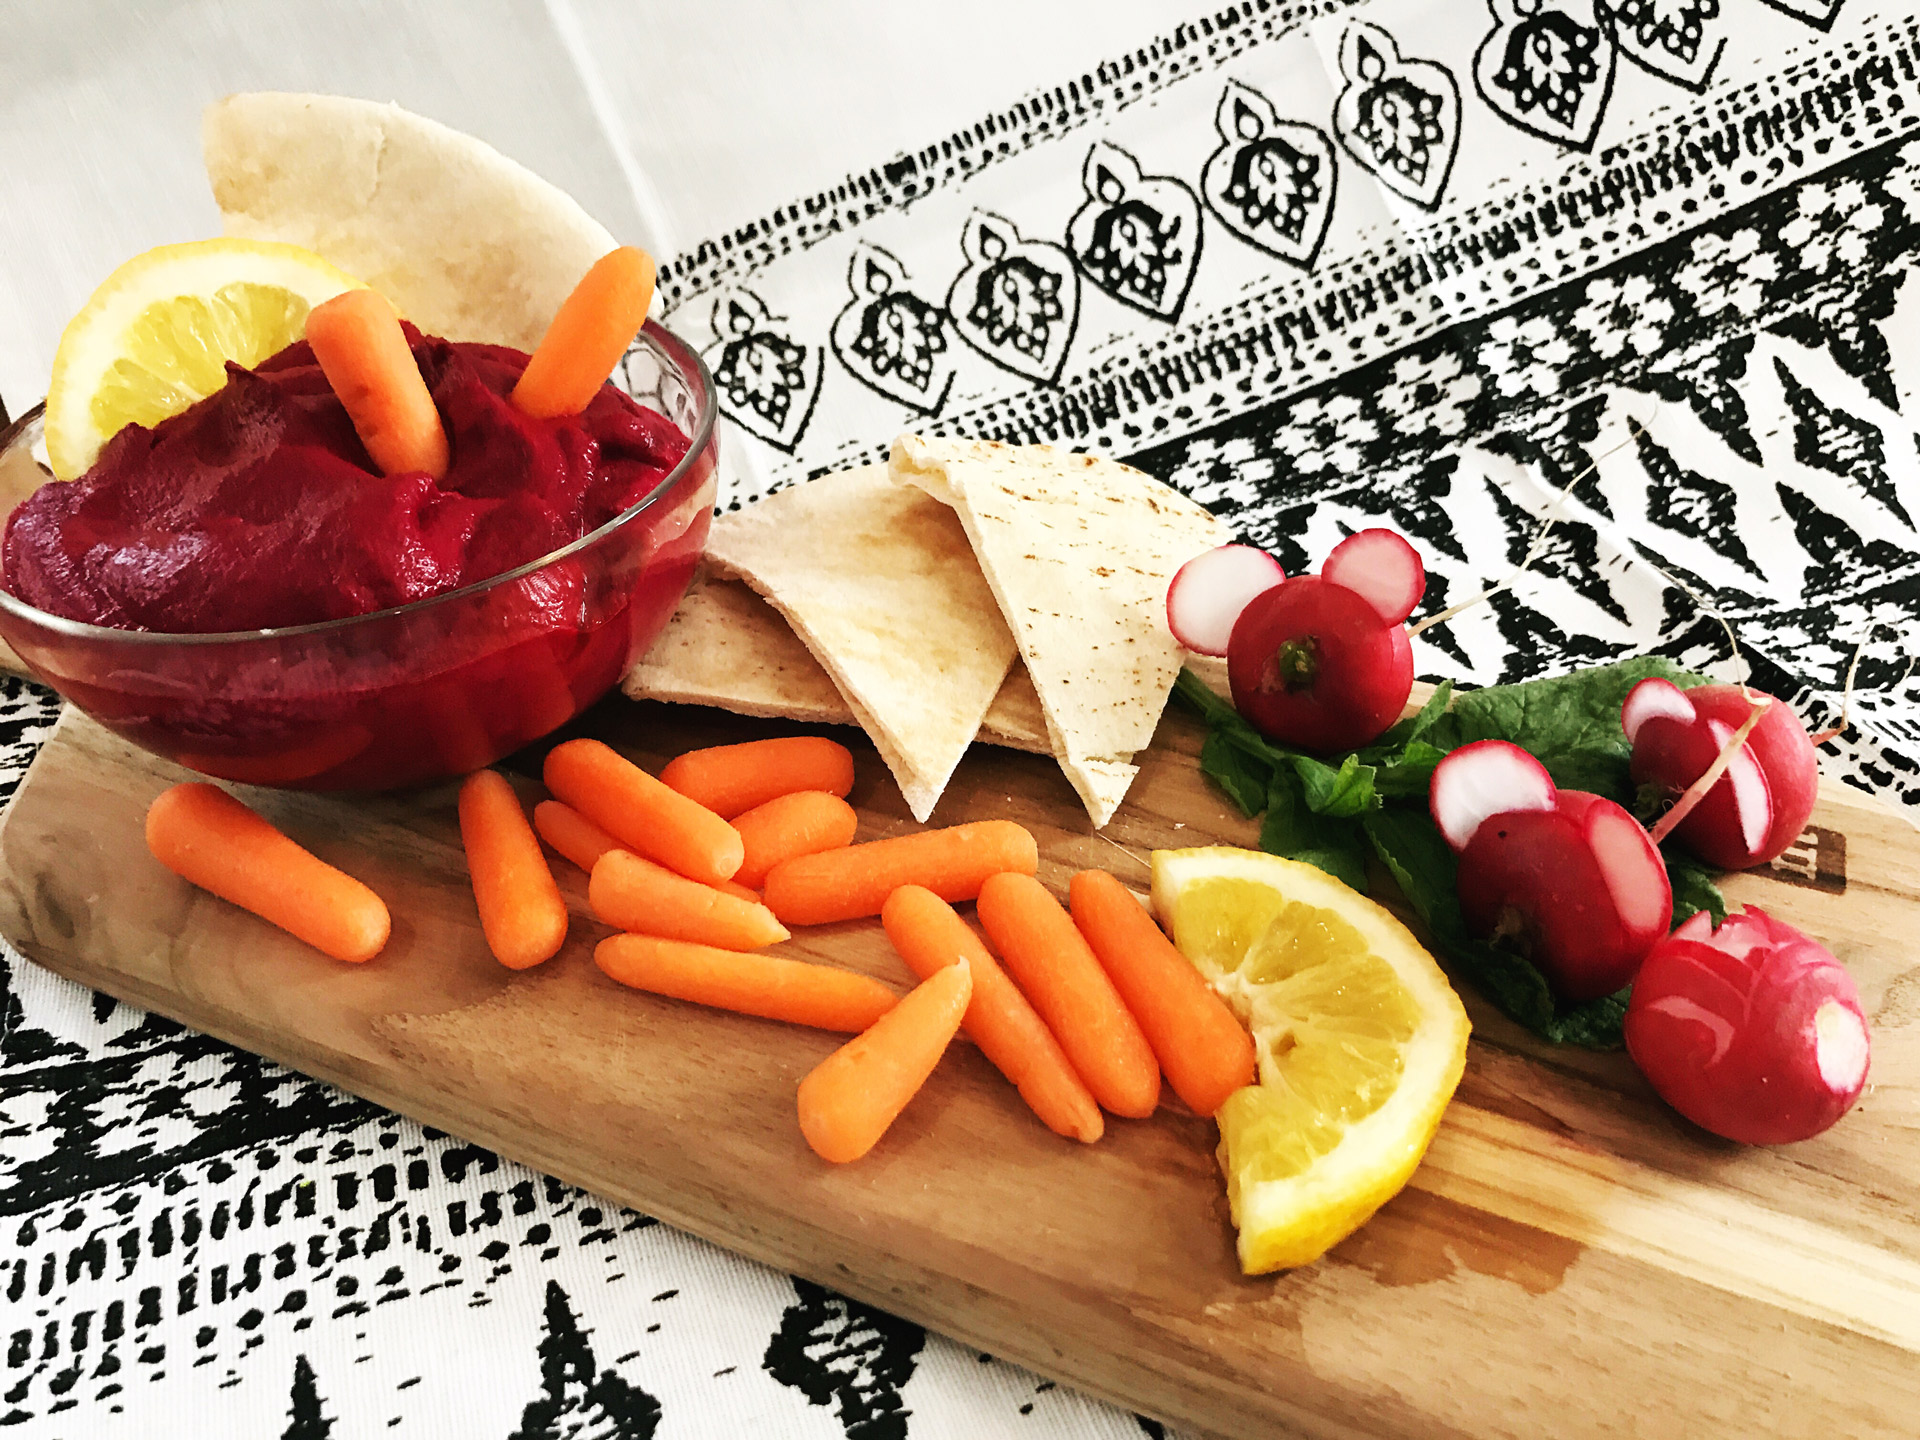 Roasted Red Beet Hummus